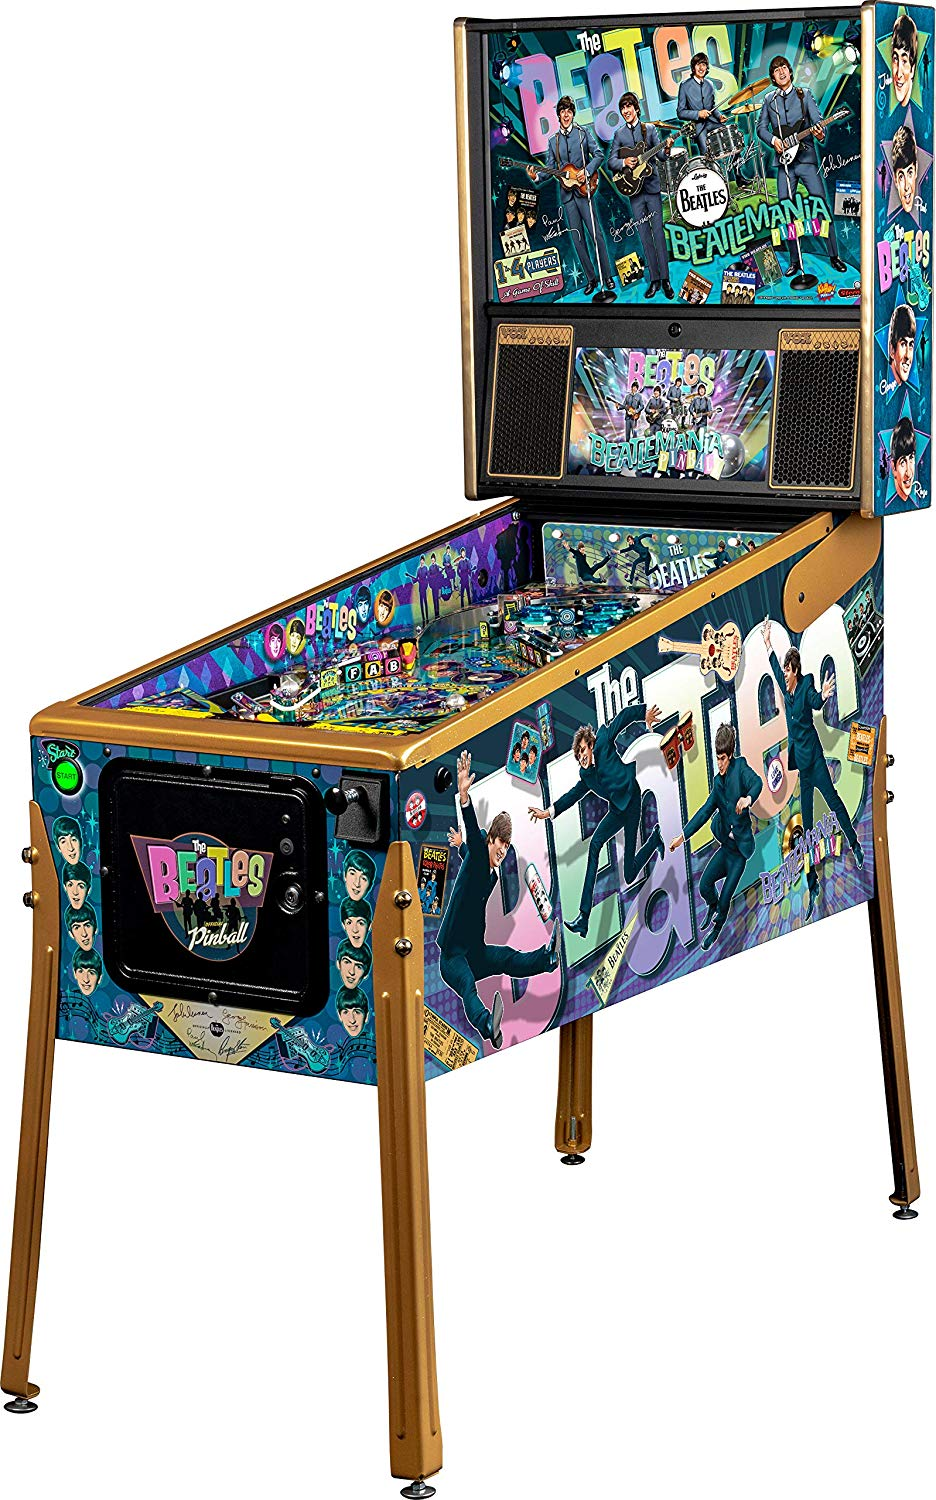 Stern The Beatles Gold Pinball Machine